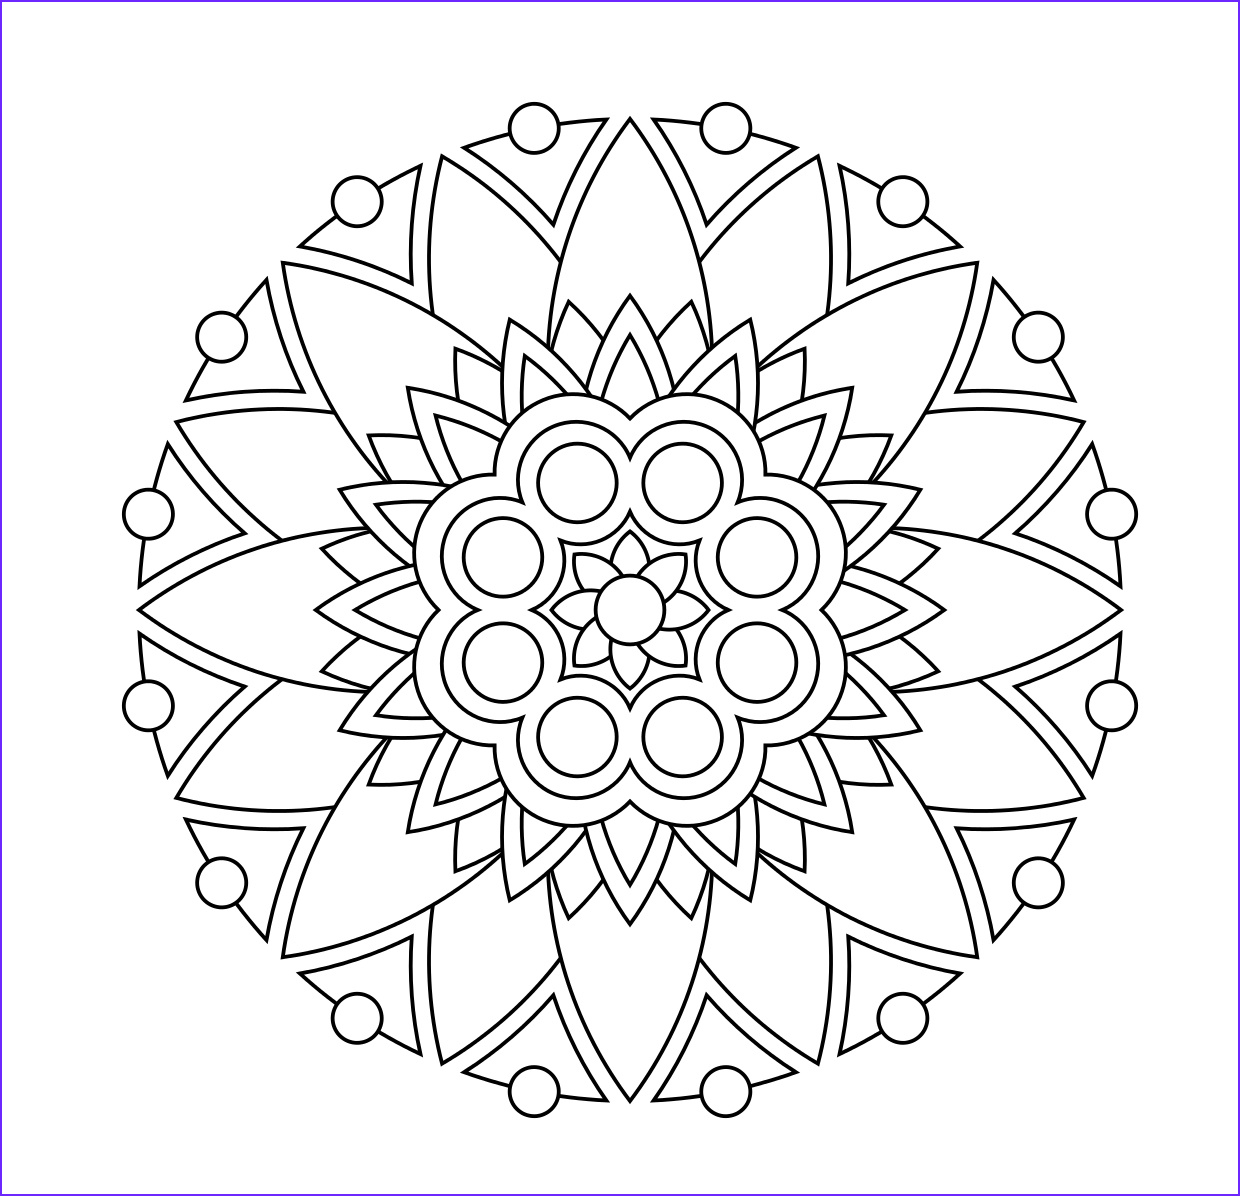 Coloring Stress Cool Photos 22 Printable Mandala & Abstract Colouring Pages for